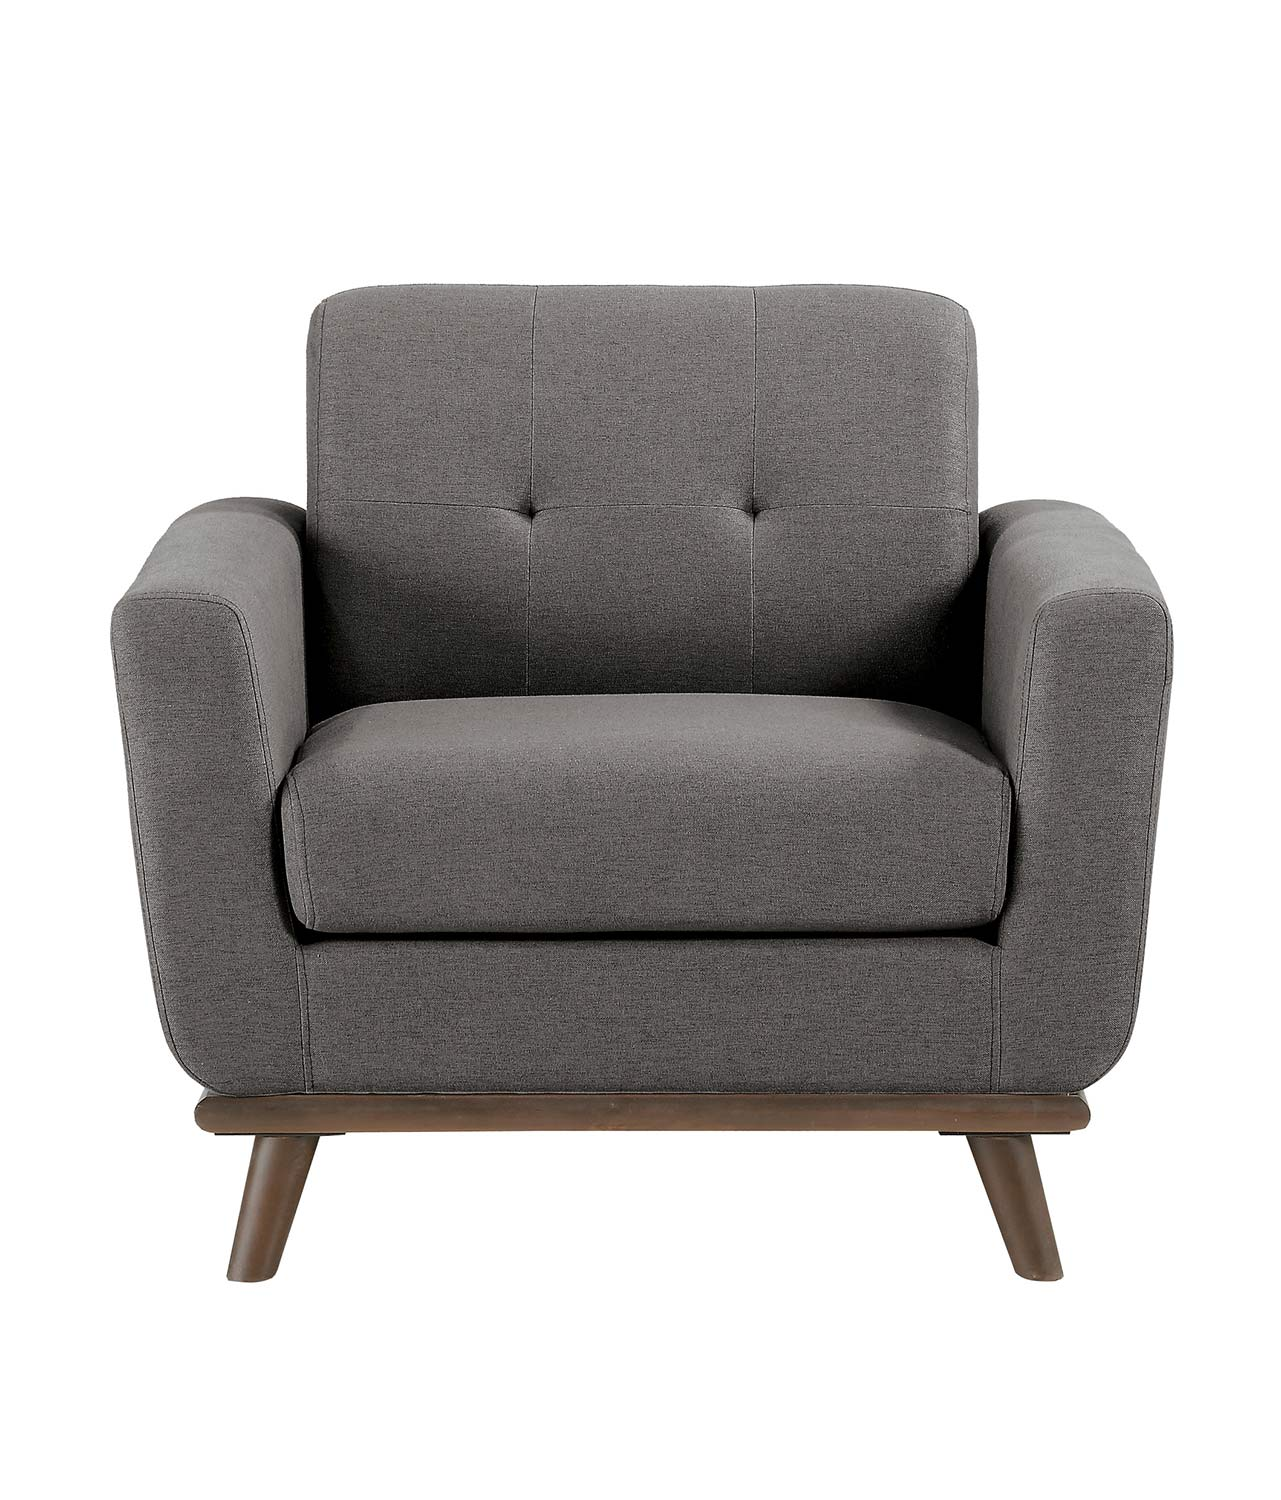 Homelegance Rittman Chair - Gray